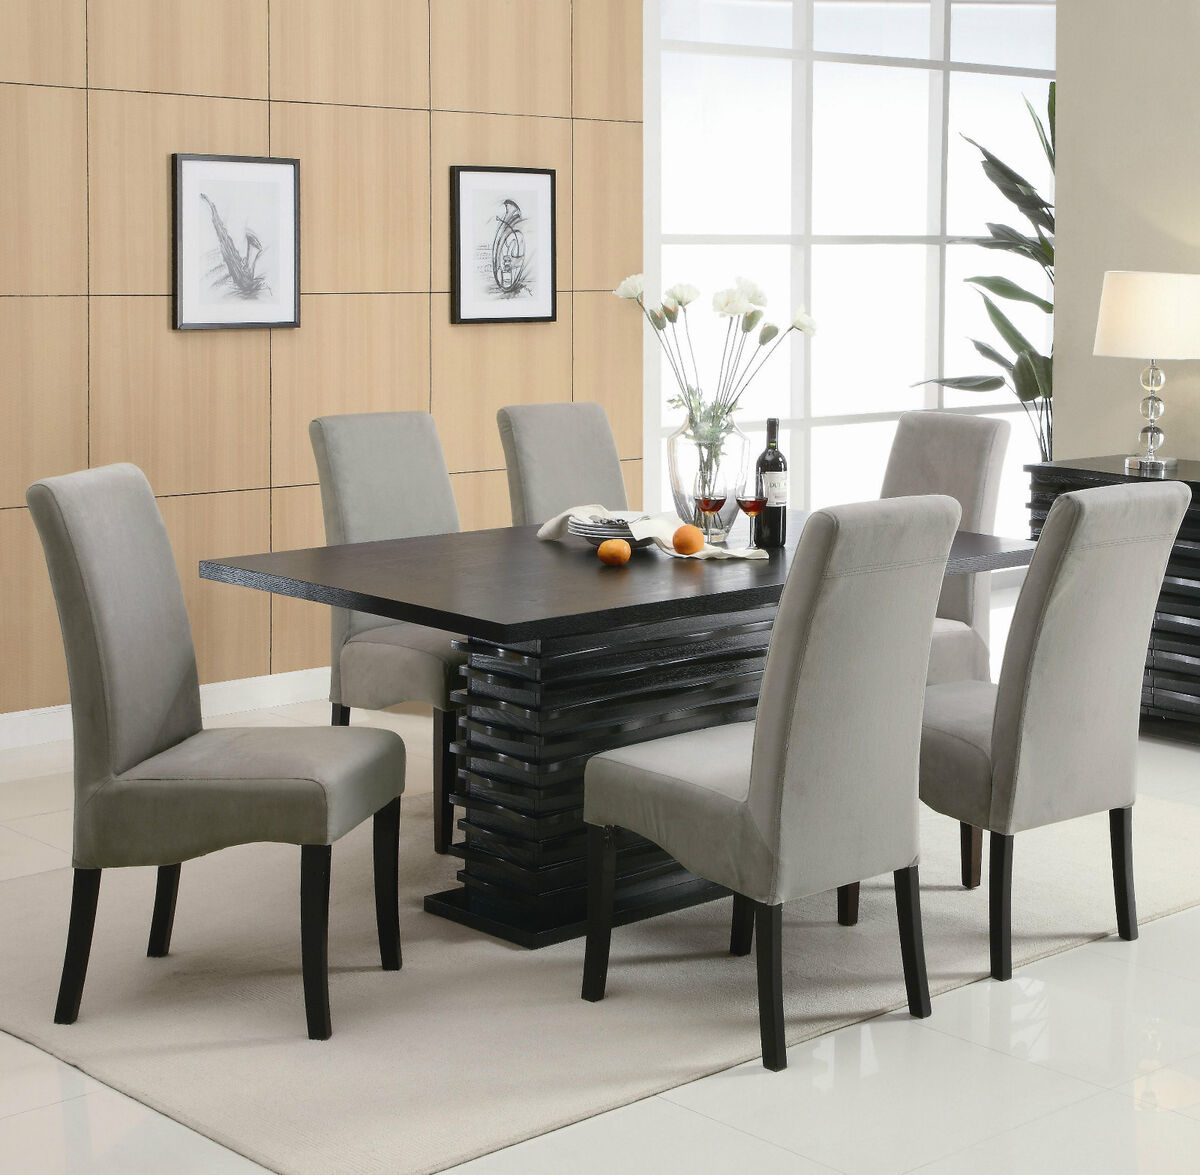 Dining table furniture contemporary dining table chairs for Contemporary dining set